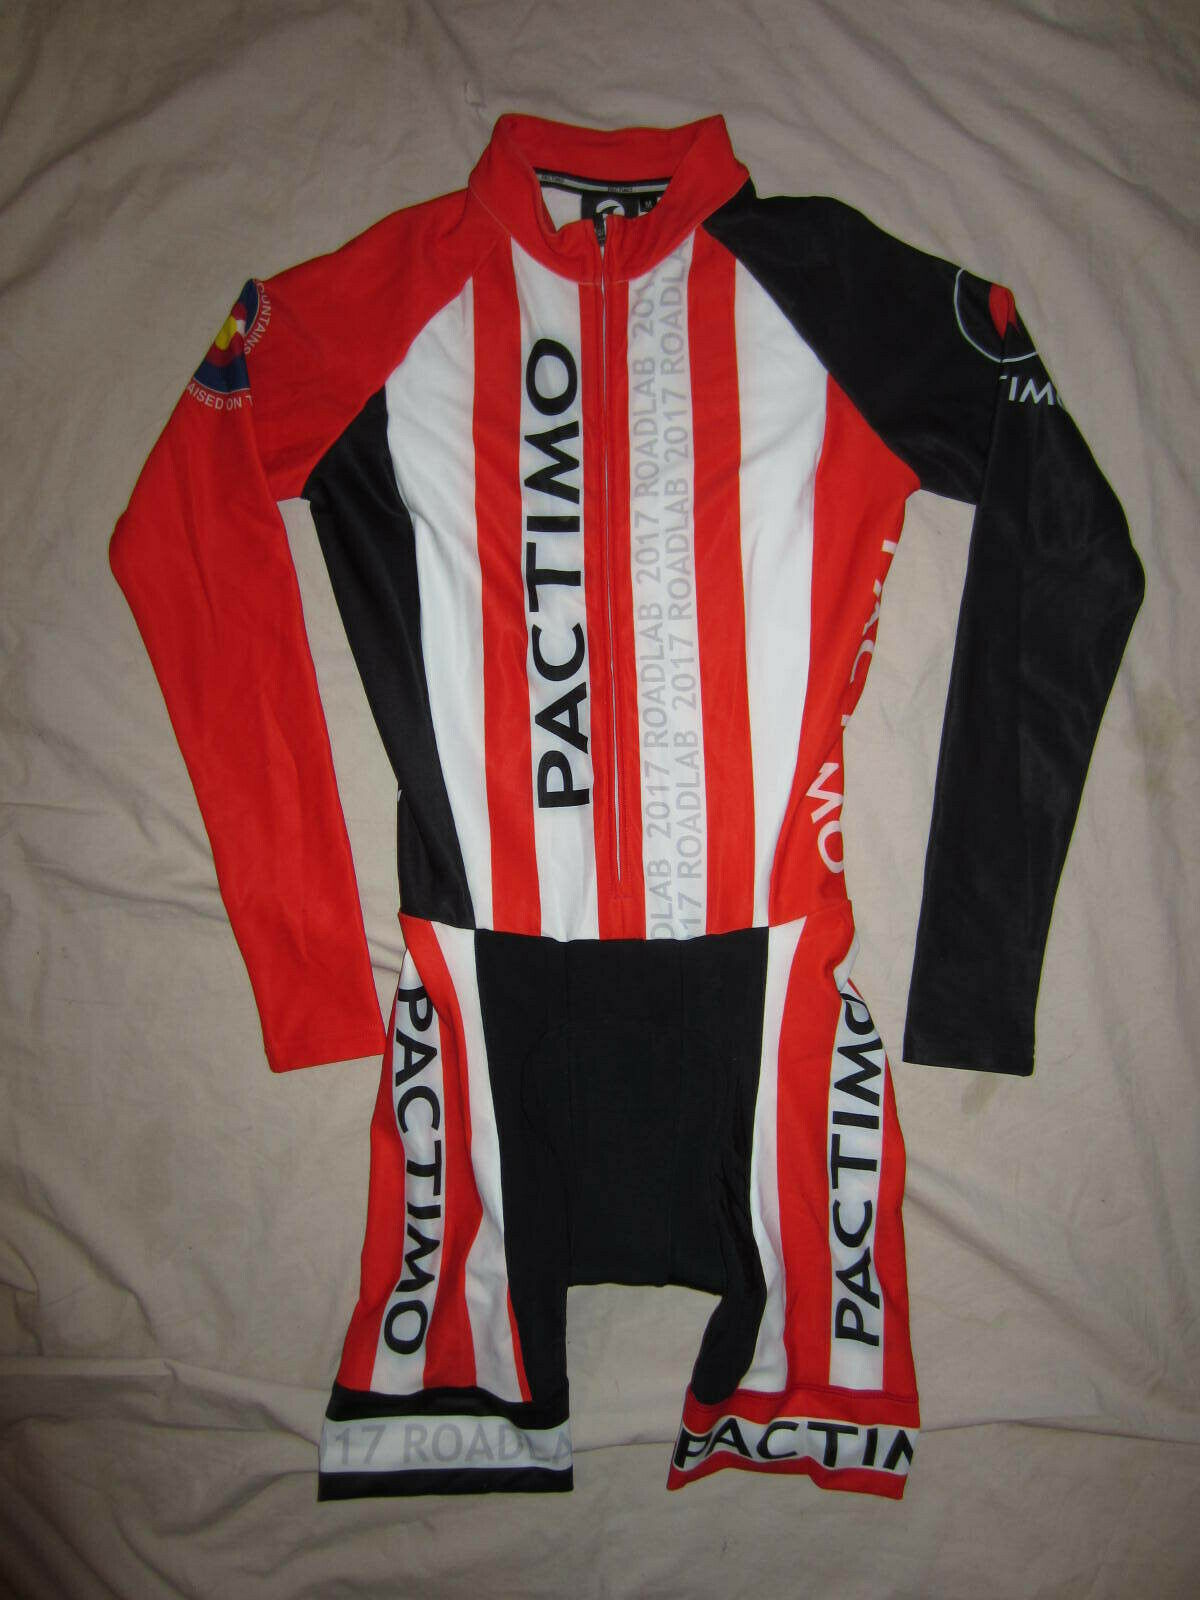 nuovo  Pactimo Thermal Cyclocross Skinsuit, lungo Sleeve, Fleece, M